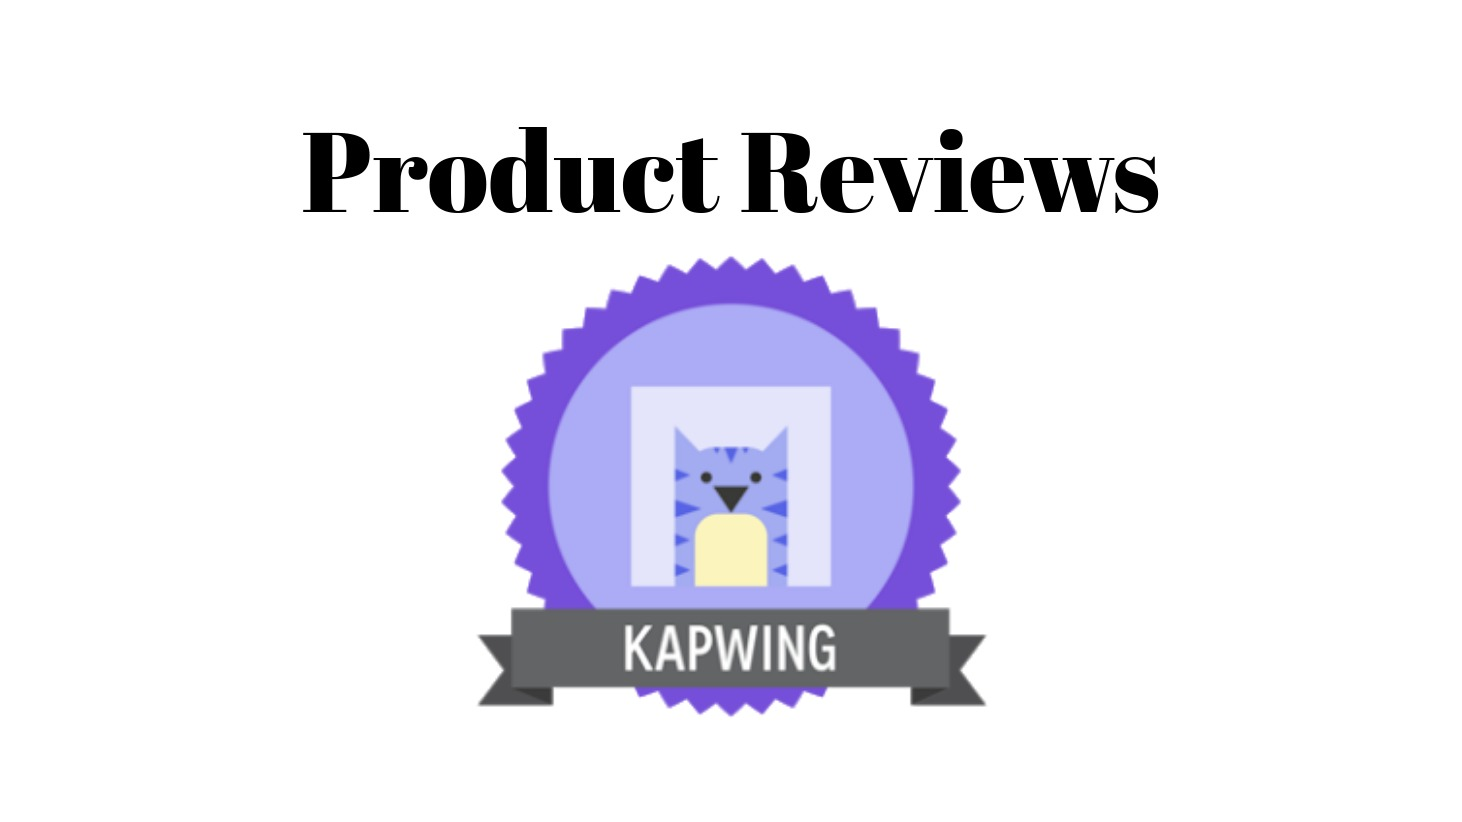 Kapwing Reviews: Read All Reviews From Across the Web